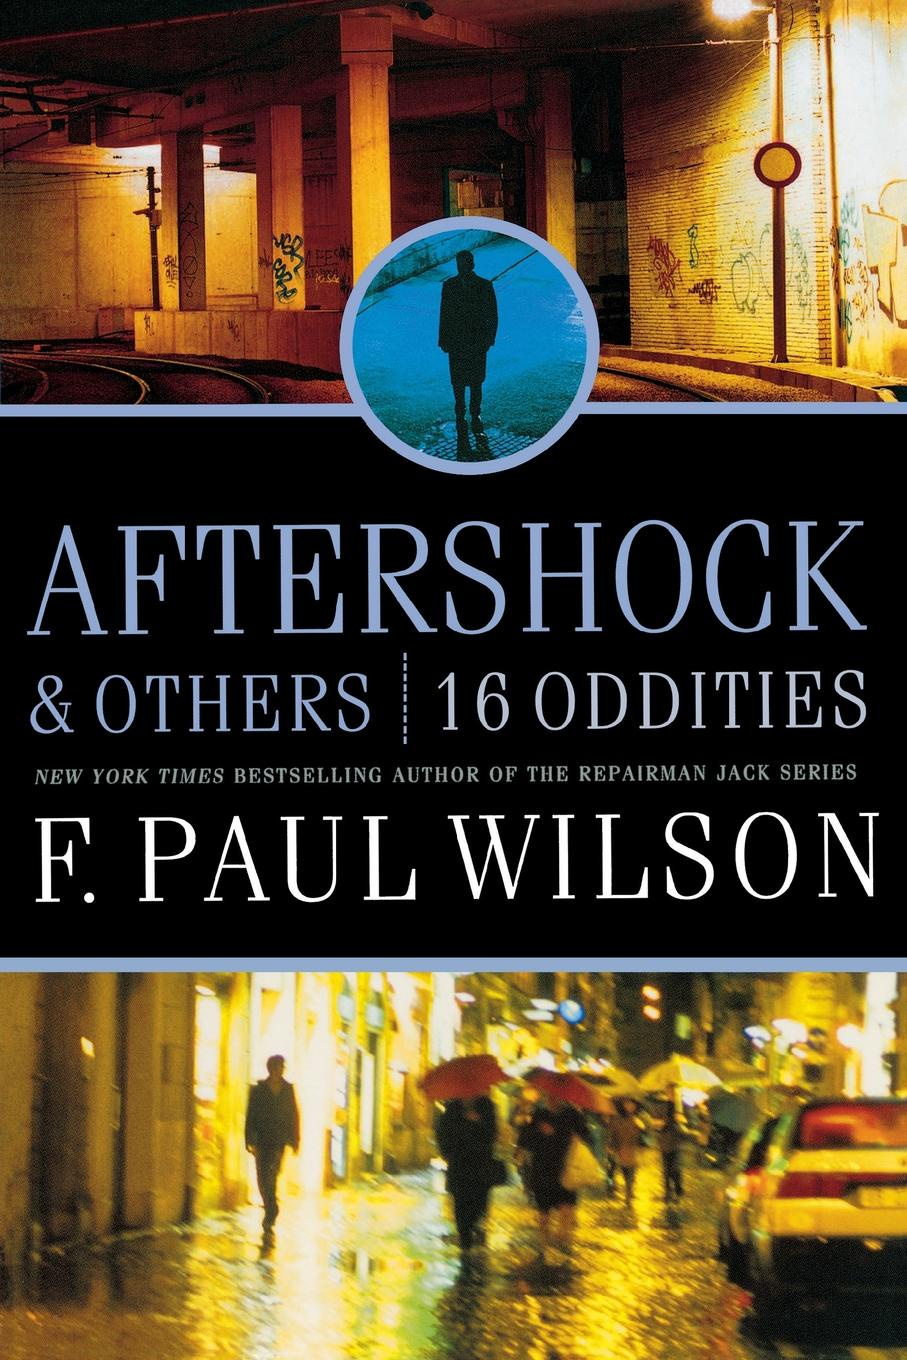 F. PAUL WILSON AFTERSHOCK & OTHERS леггинсы aftershock